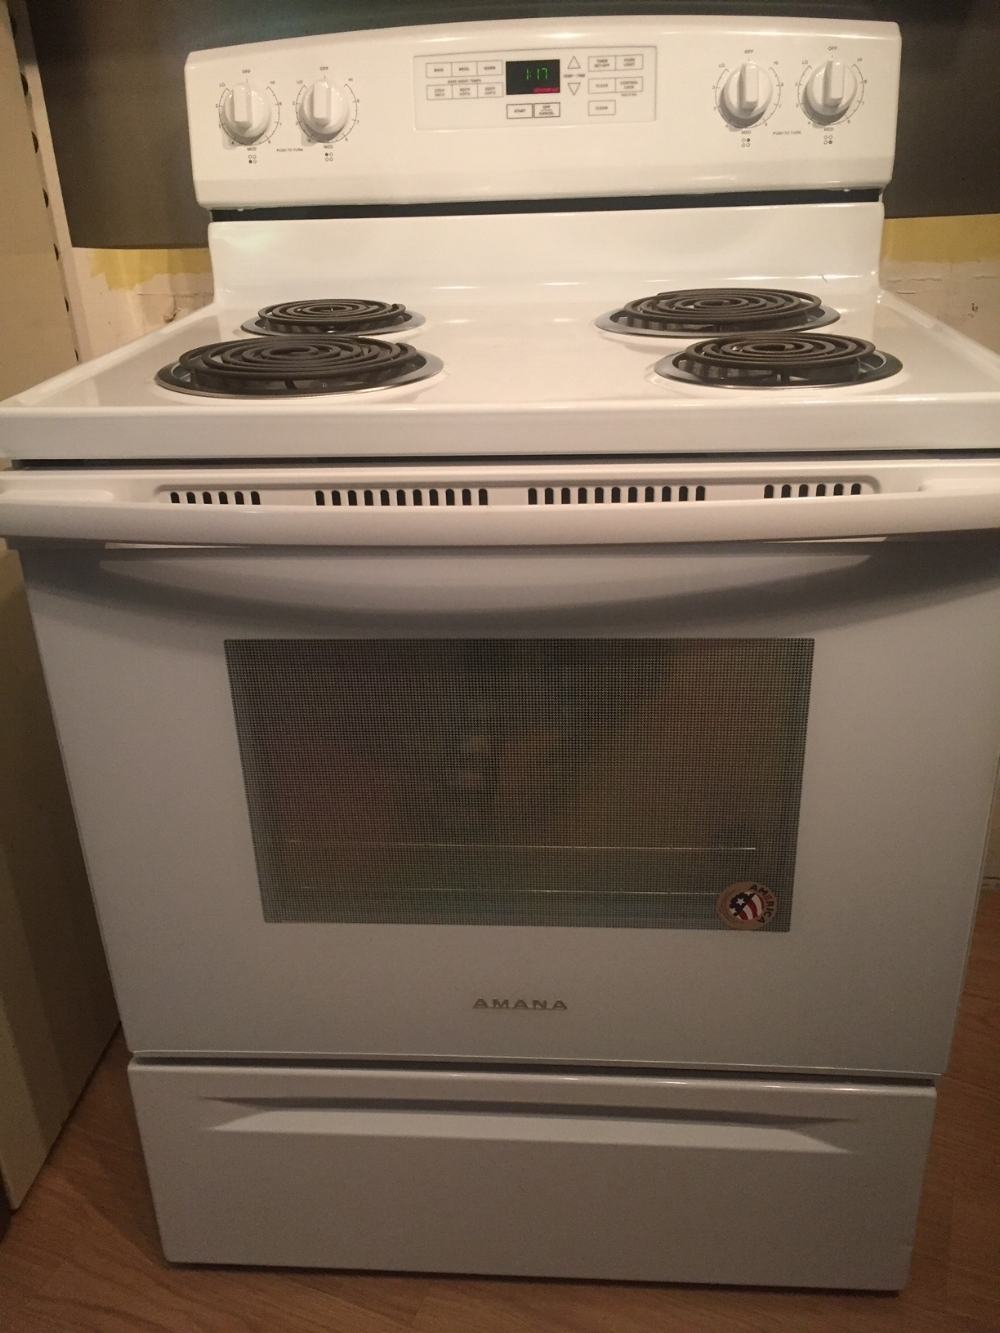 My new stove! It's an Amana!